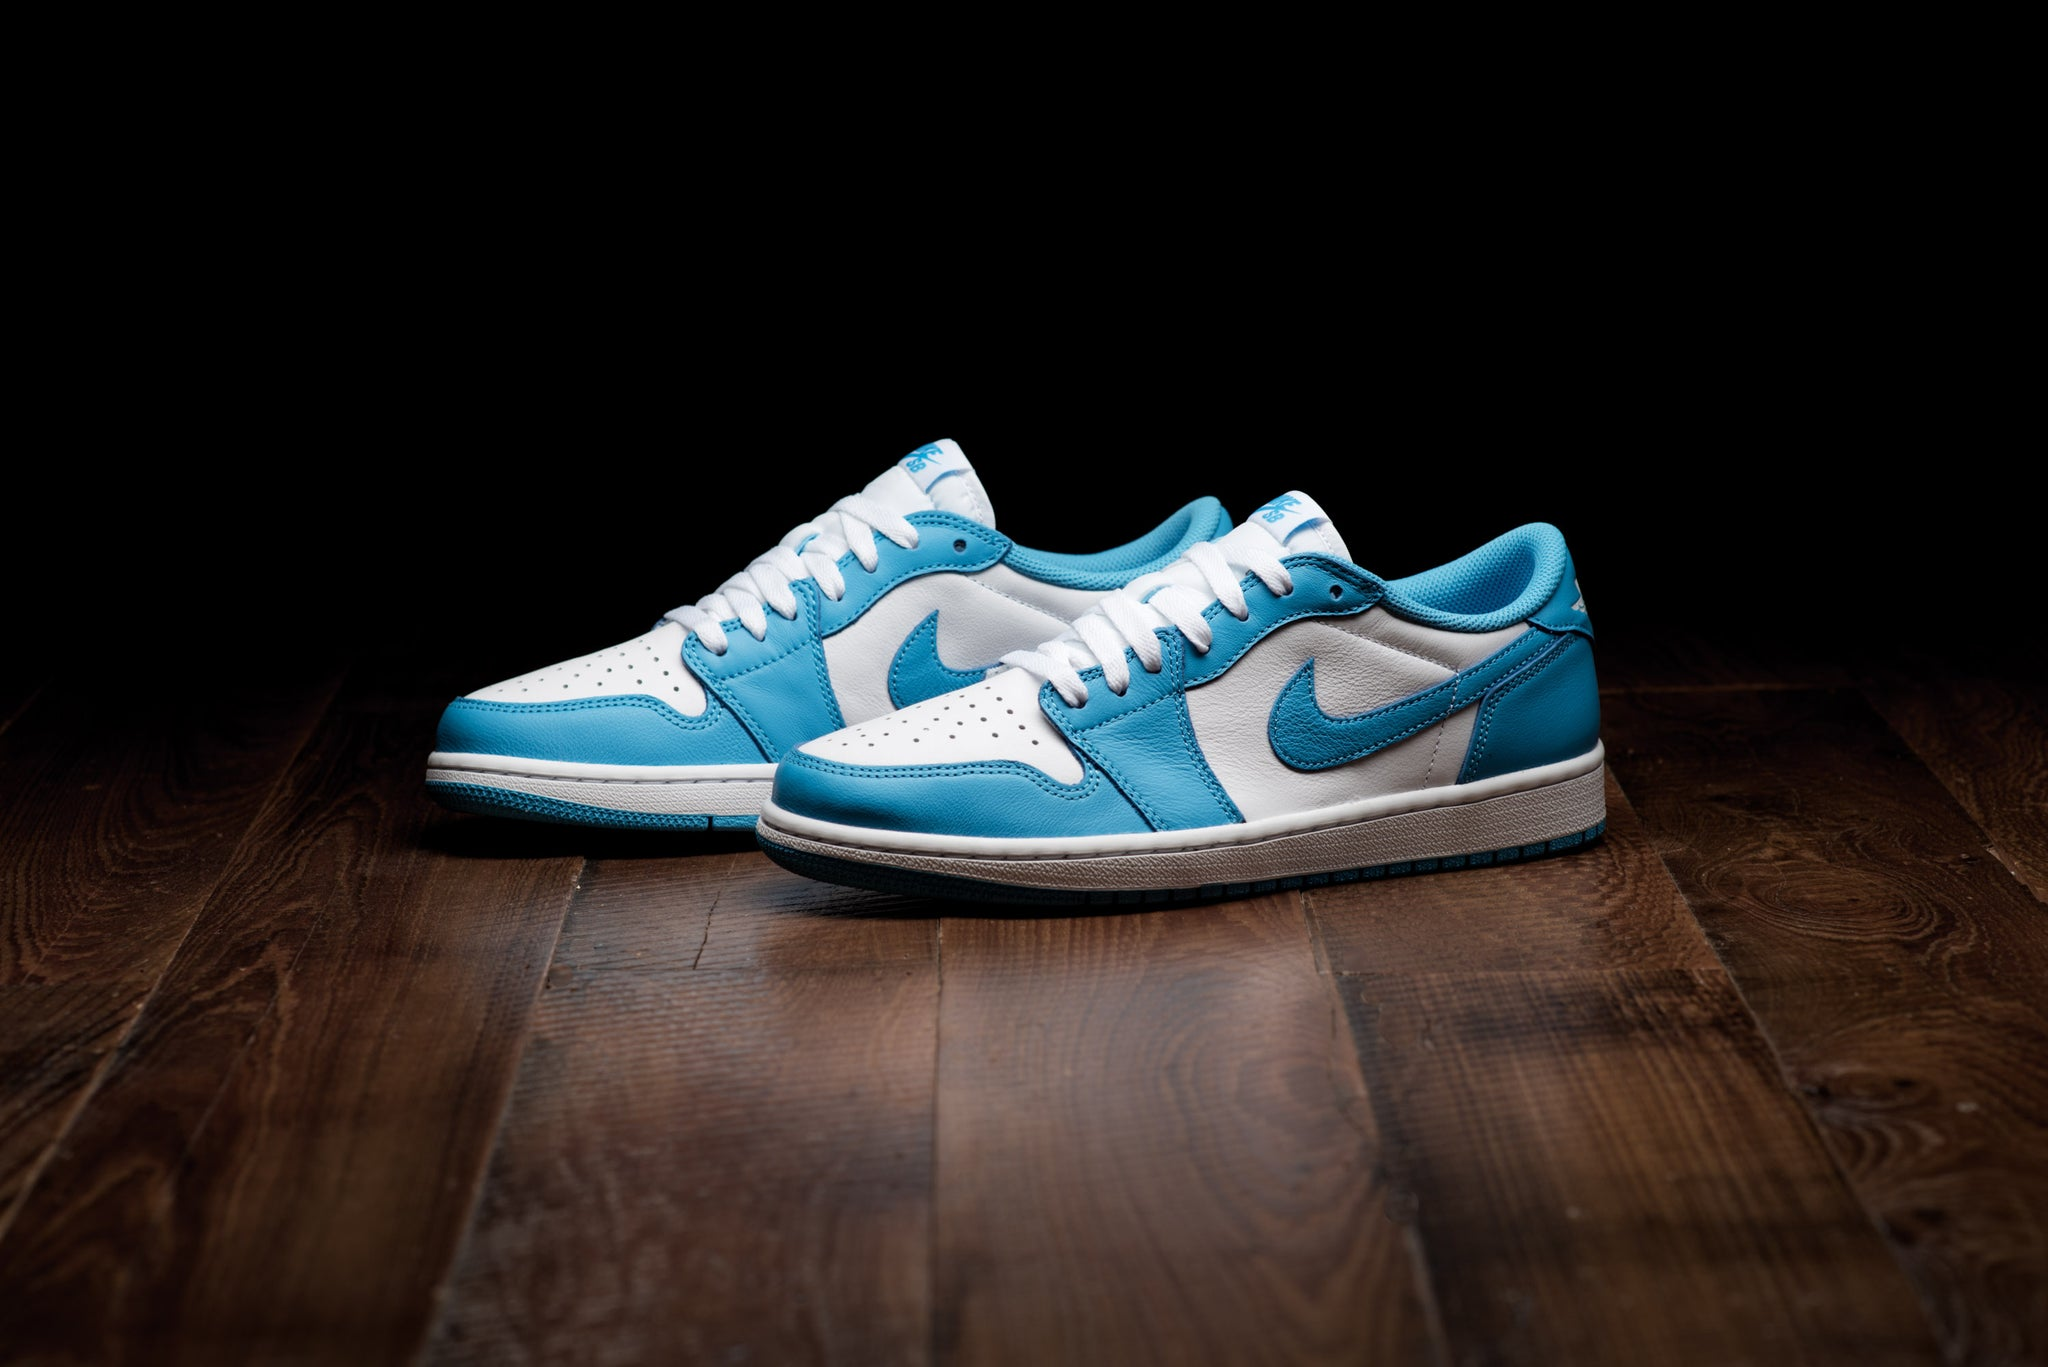 regard détaillé c2da3 6ac35 Air Jordan 1 Low QS - Dark Powder Blue - Sneaker Politics